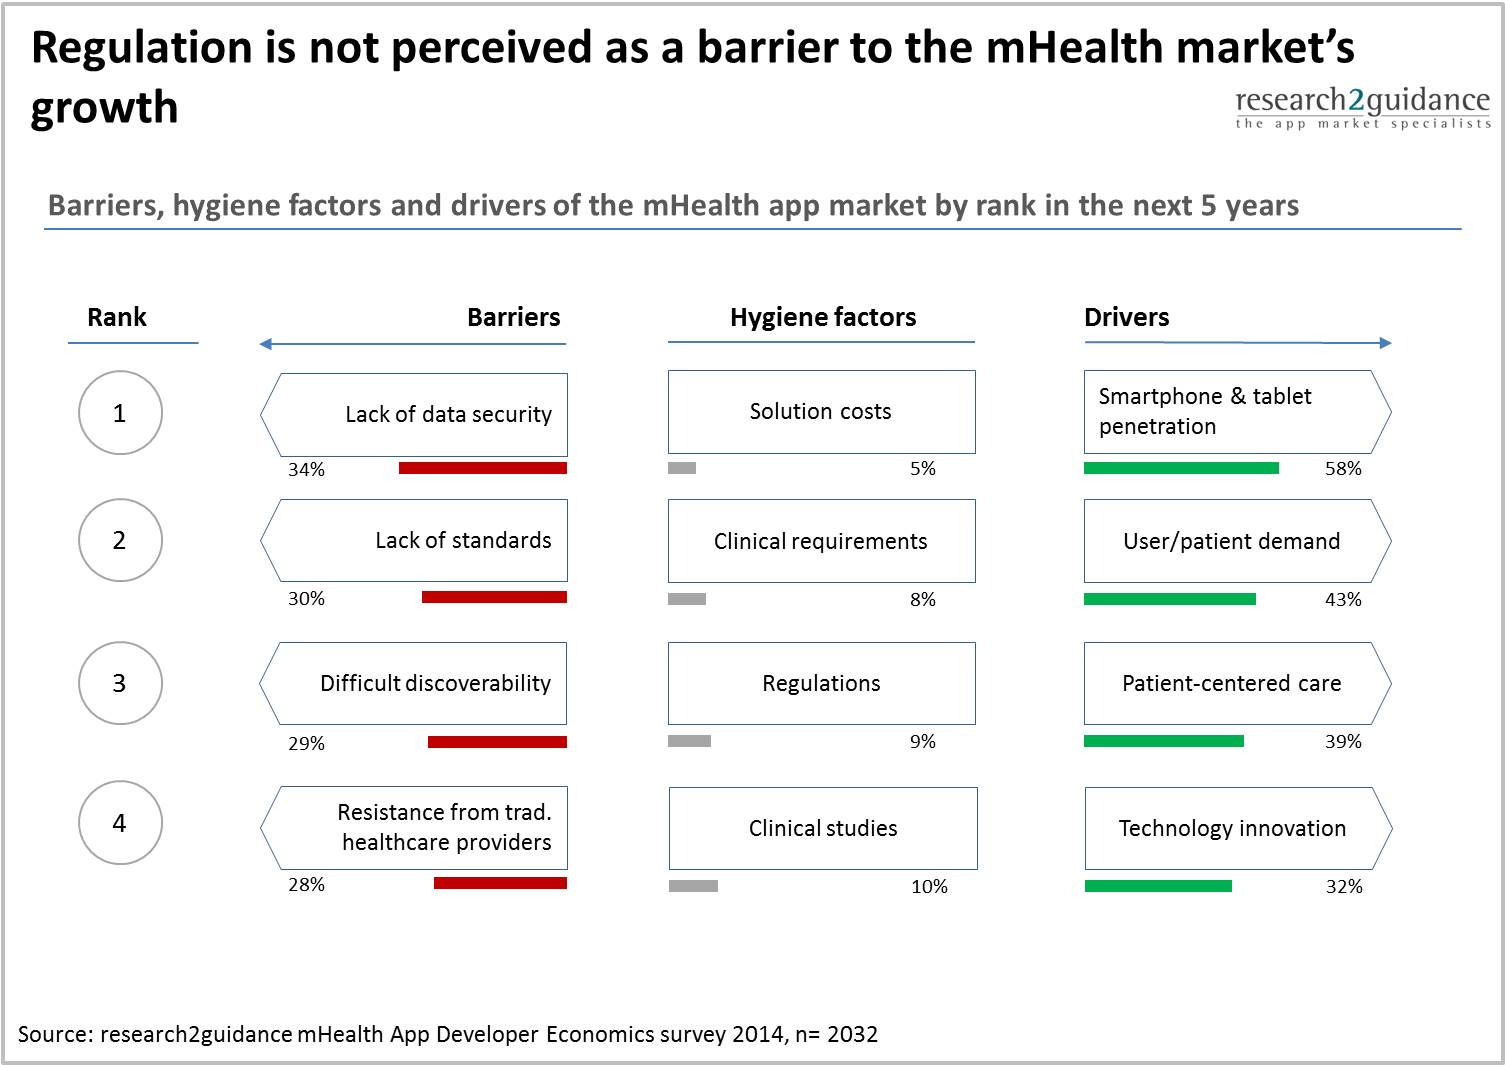 mHealth barriers - The 8 drivers and barriers that will shape the mHealth app market in the next 5 years